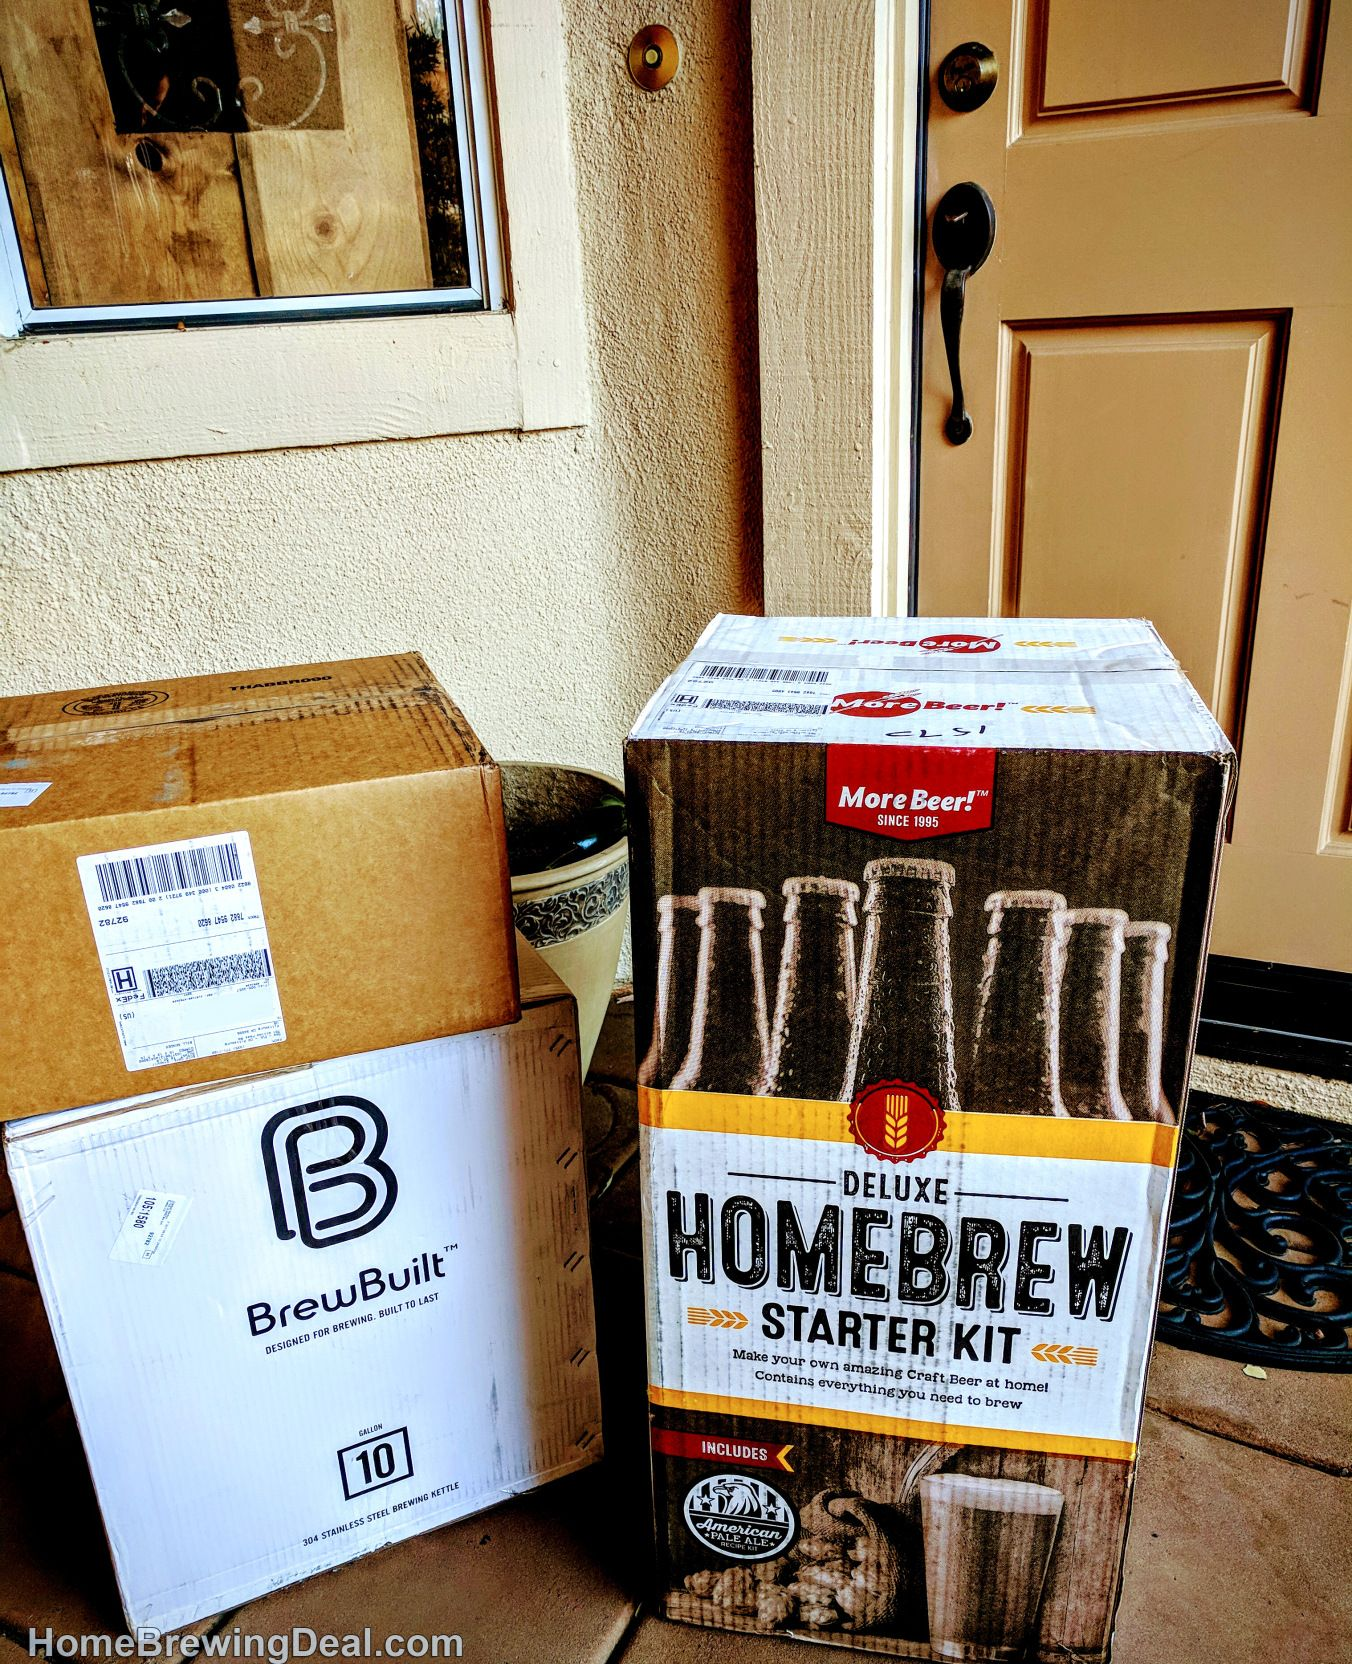 The Perfect Gift for any guy this Holiday Season! Complete Home Beer Brewing Kit. #beer #brewing #homebrew #homebrewing #home #craftbeer #kit #beer # brewing ...